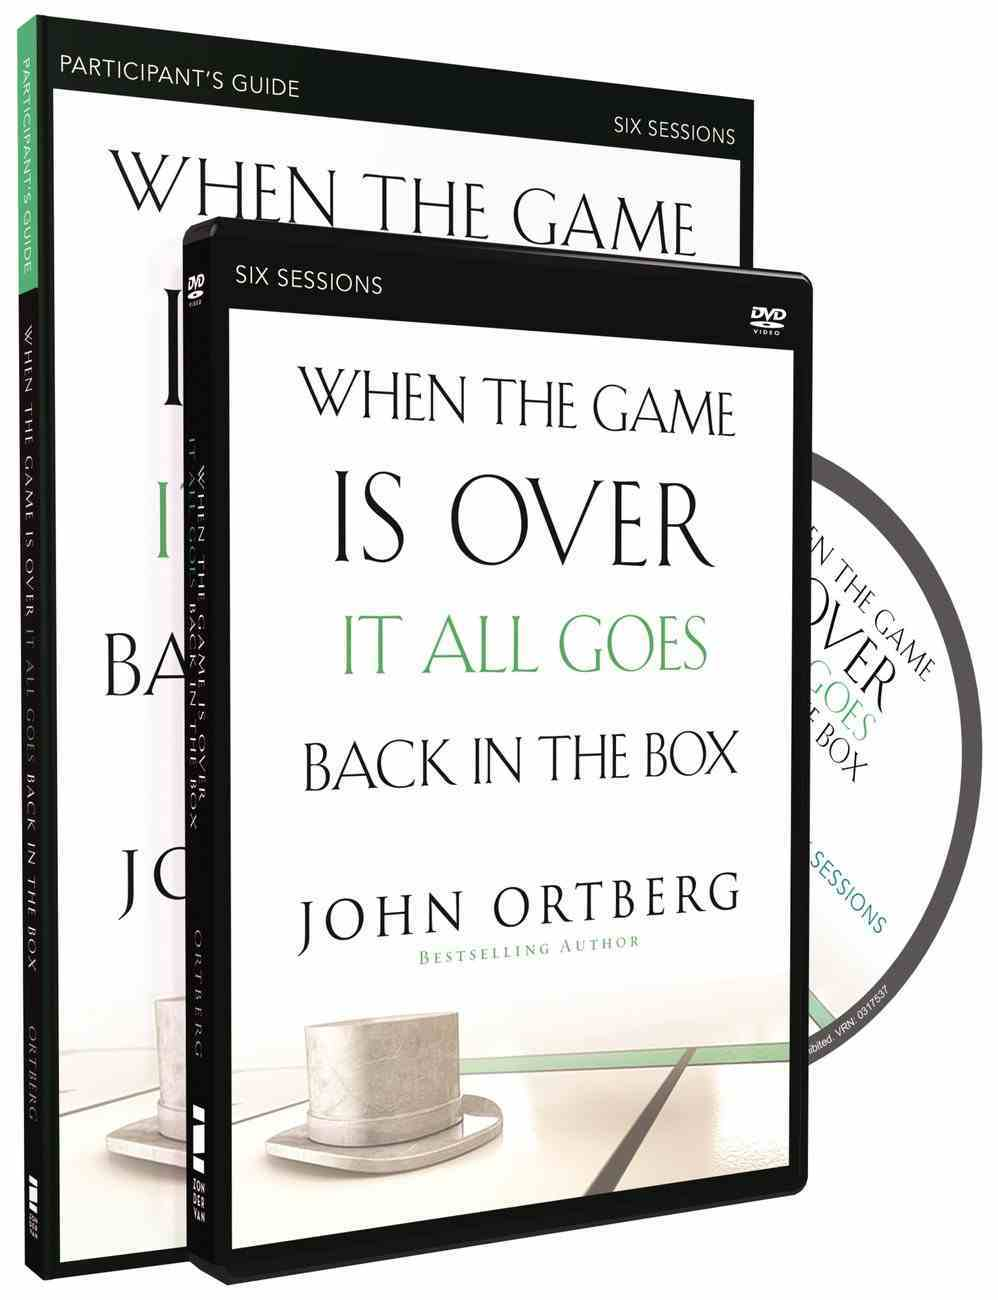 When the Game is Over It All Goes Back in the Box (Participant's Guide With Dvd) Pack